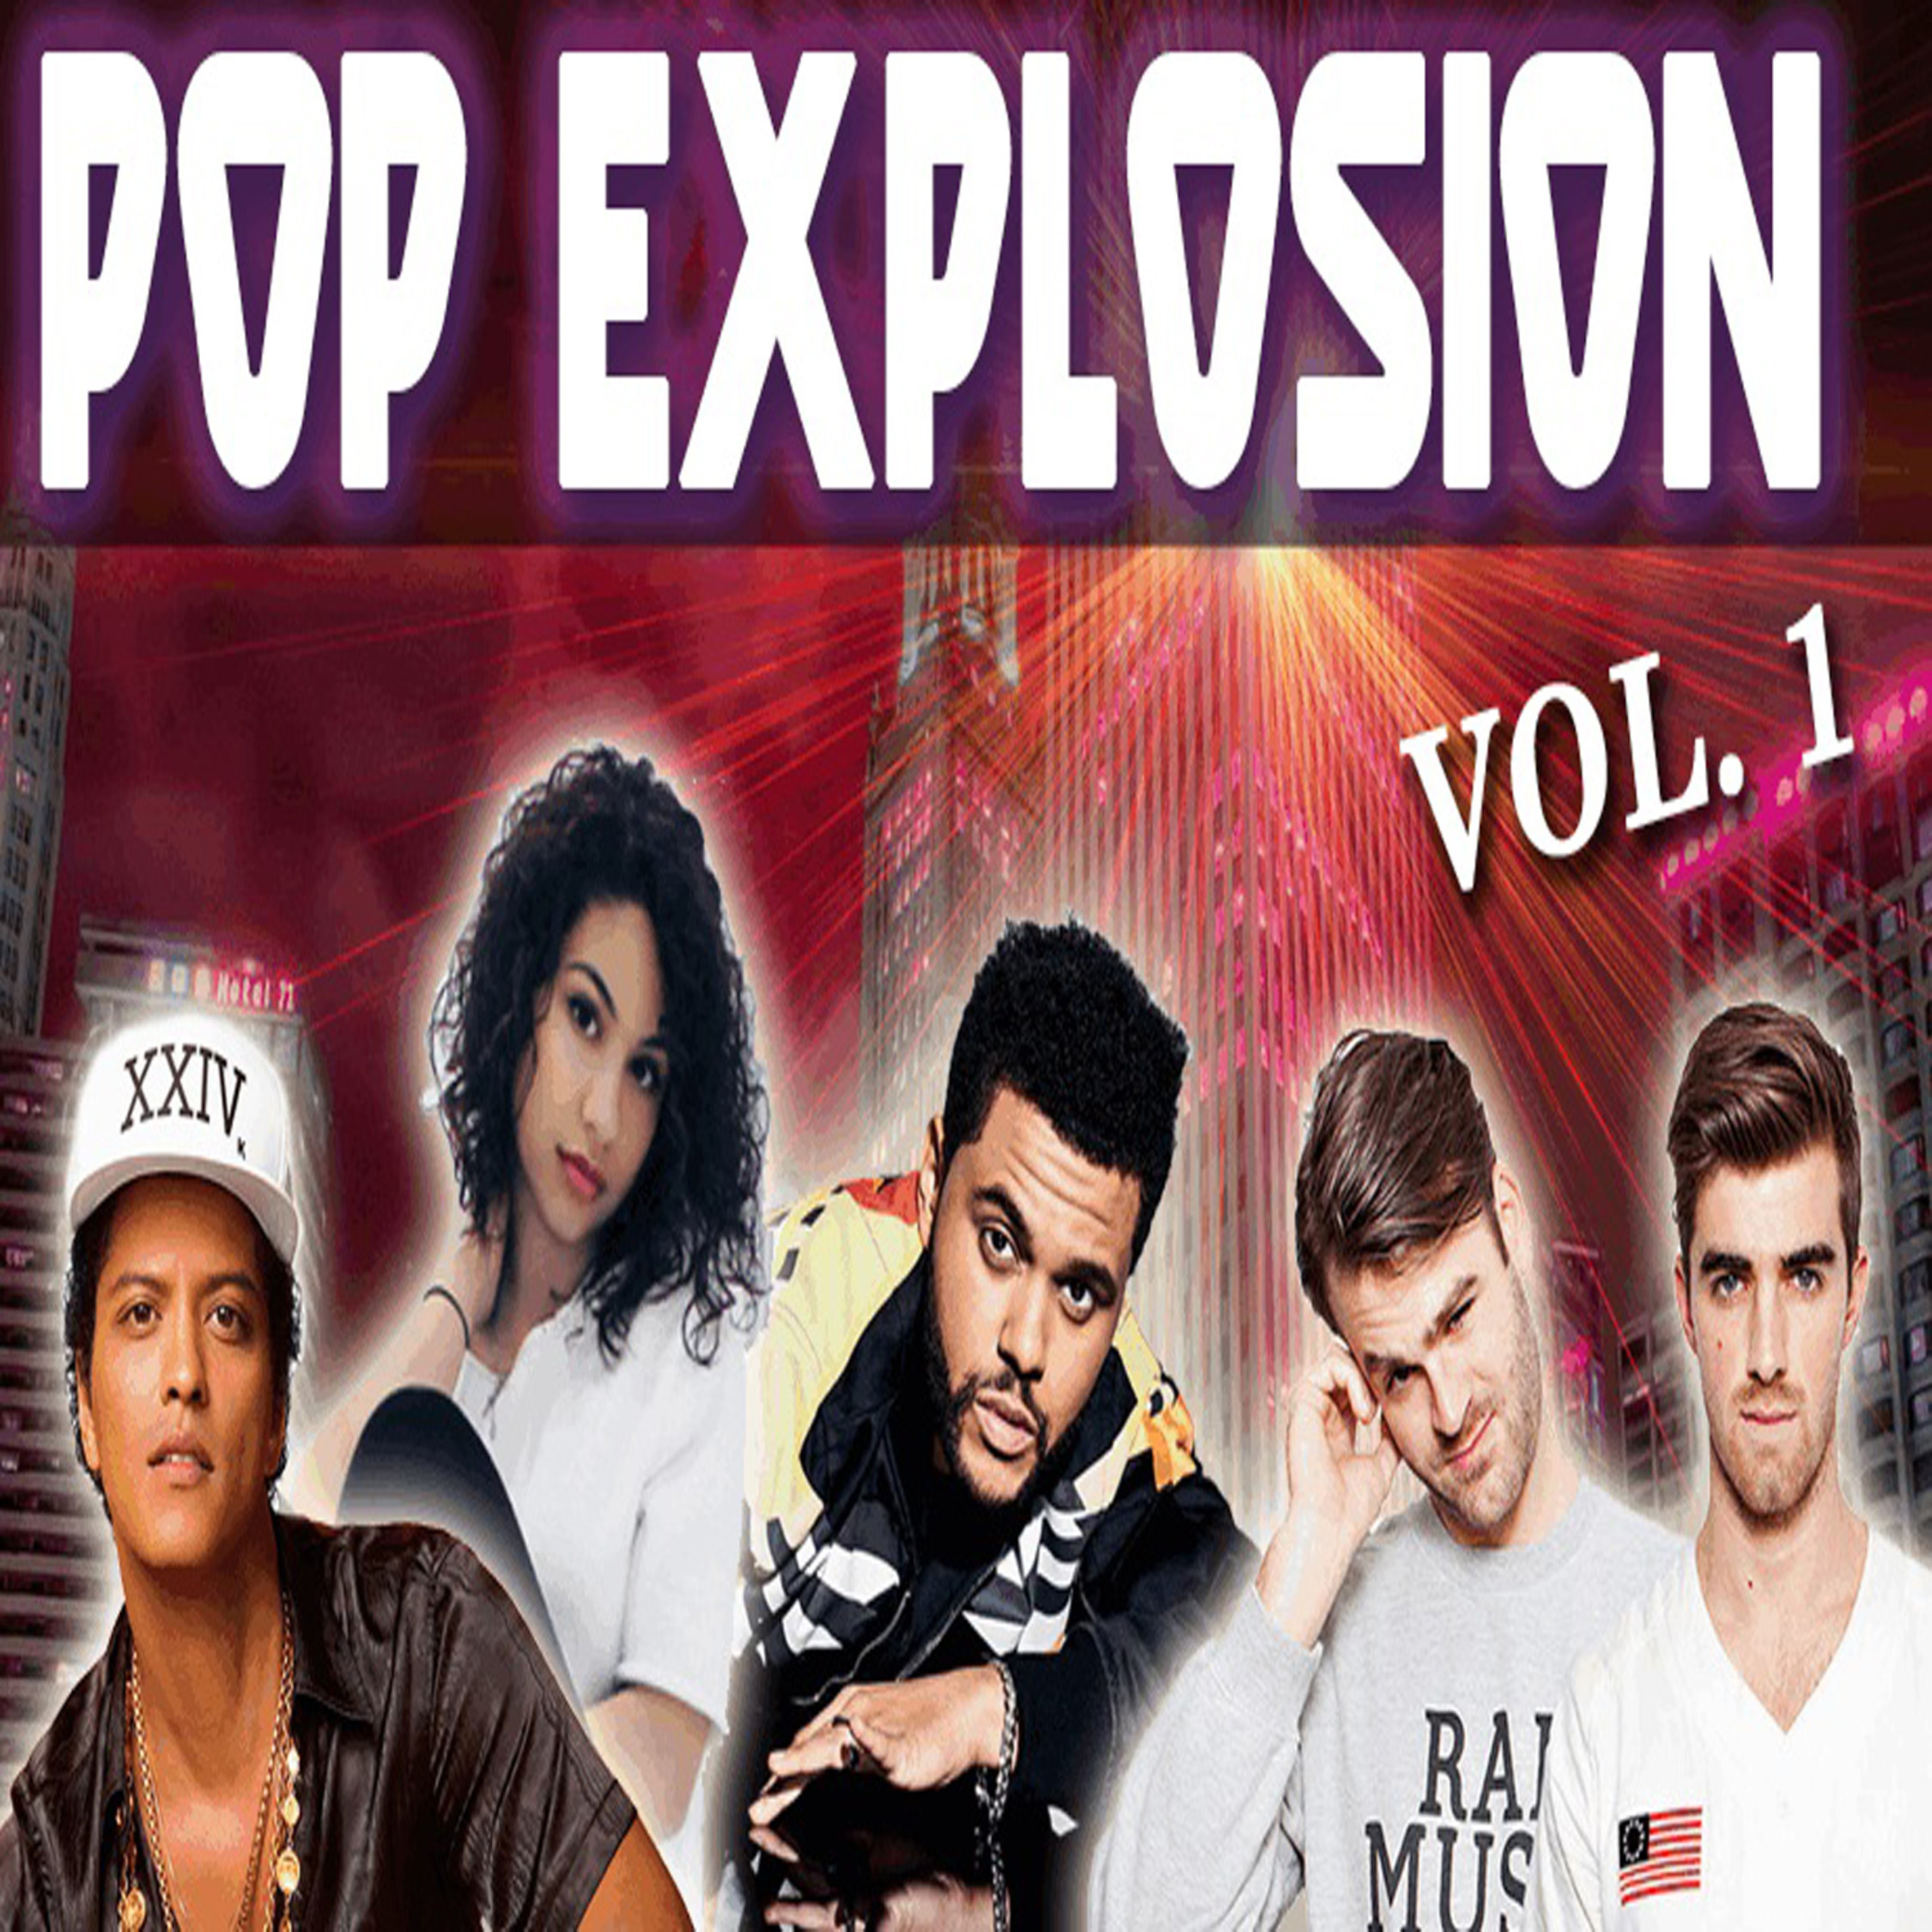 Pop Explosion Vol. 1 - Music Video Collection MP4 Videos